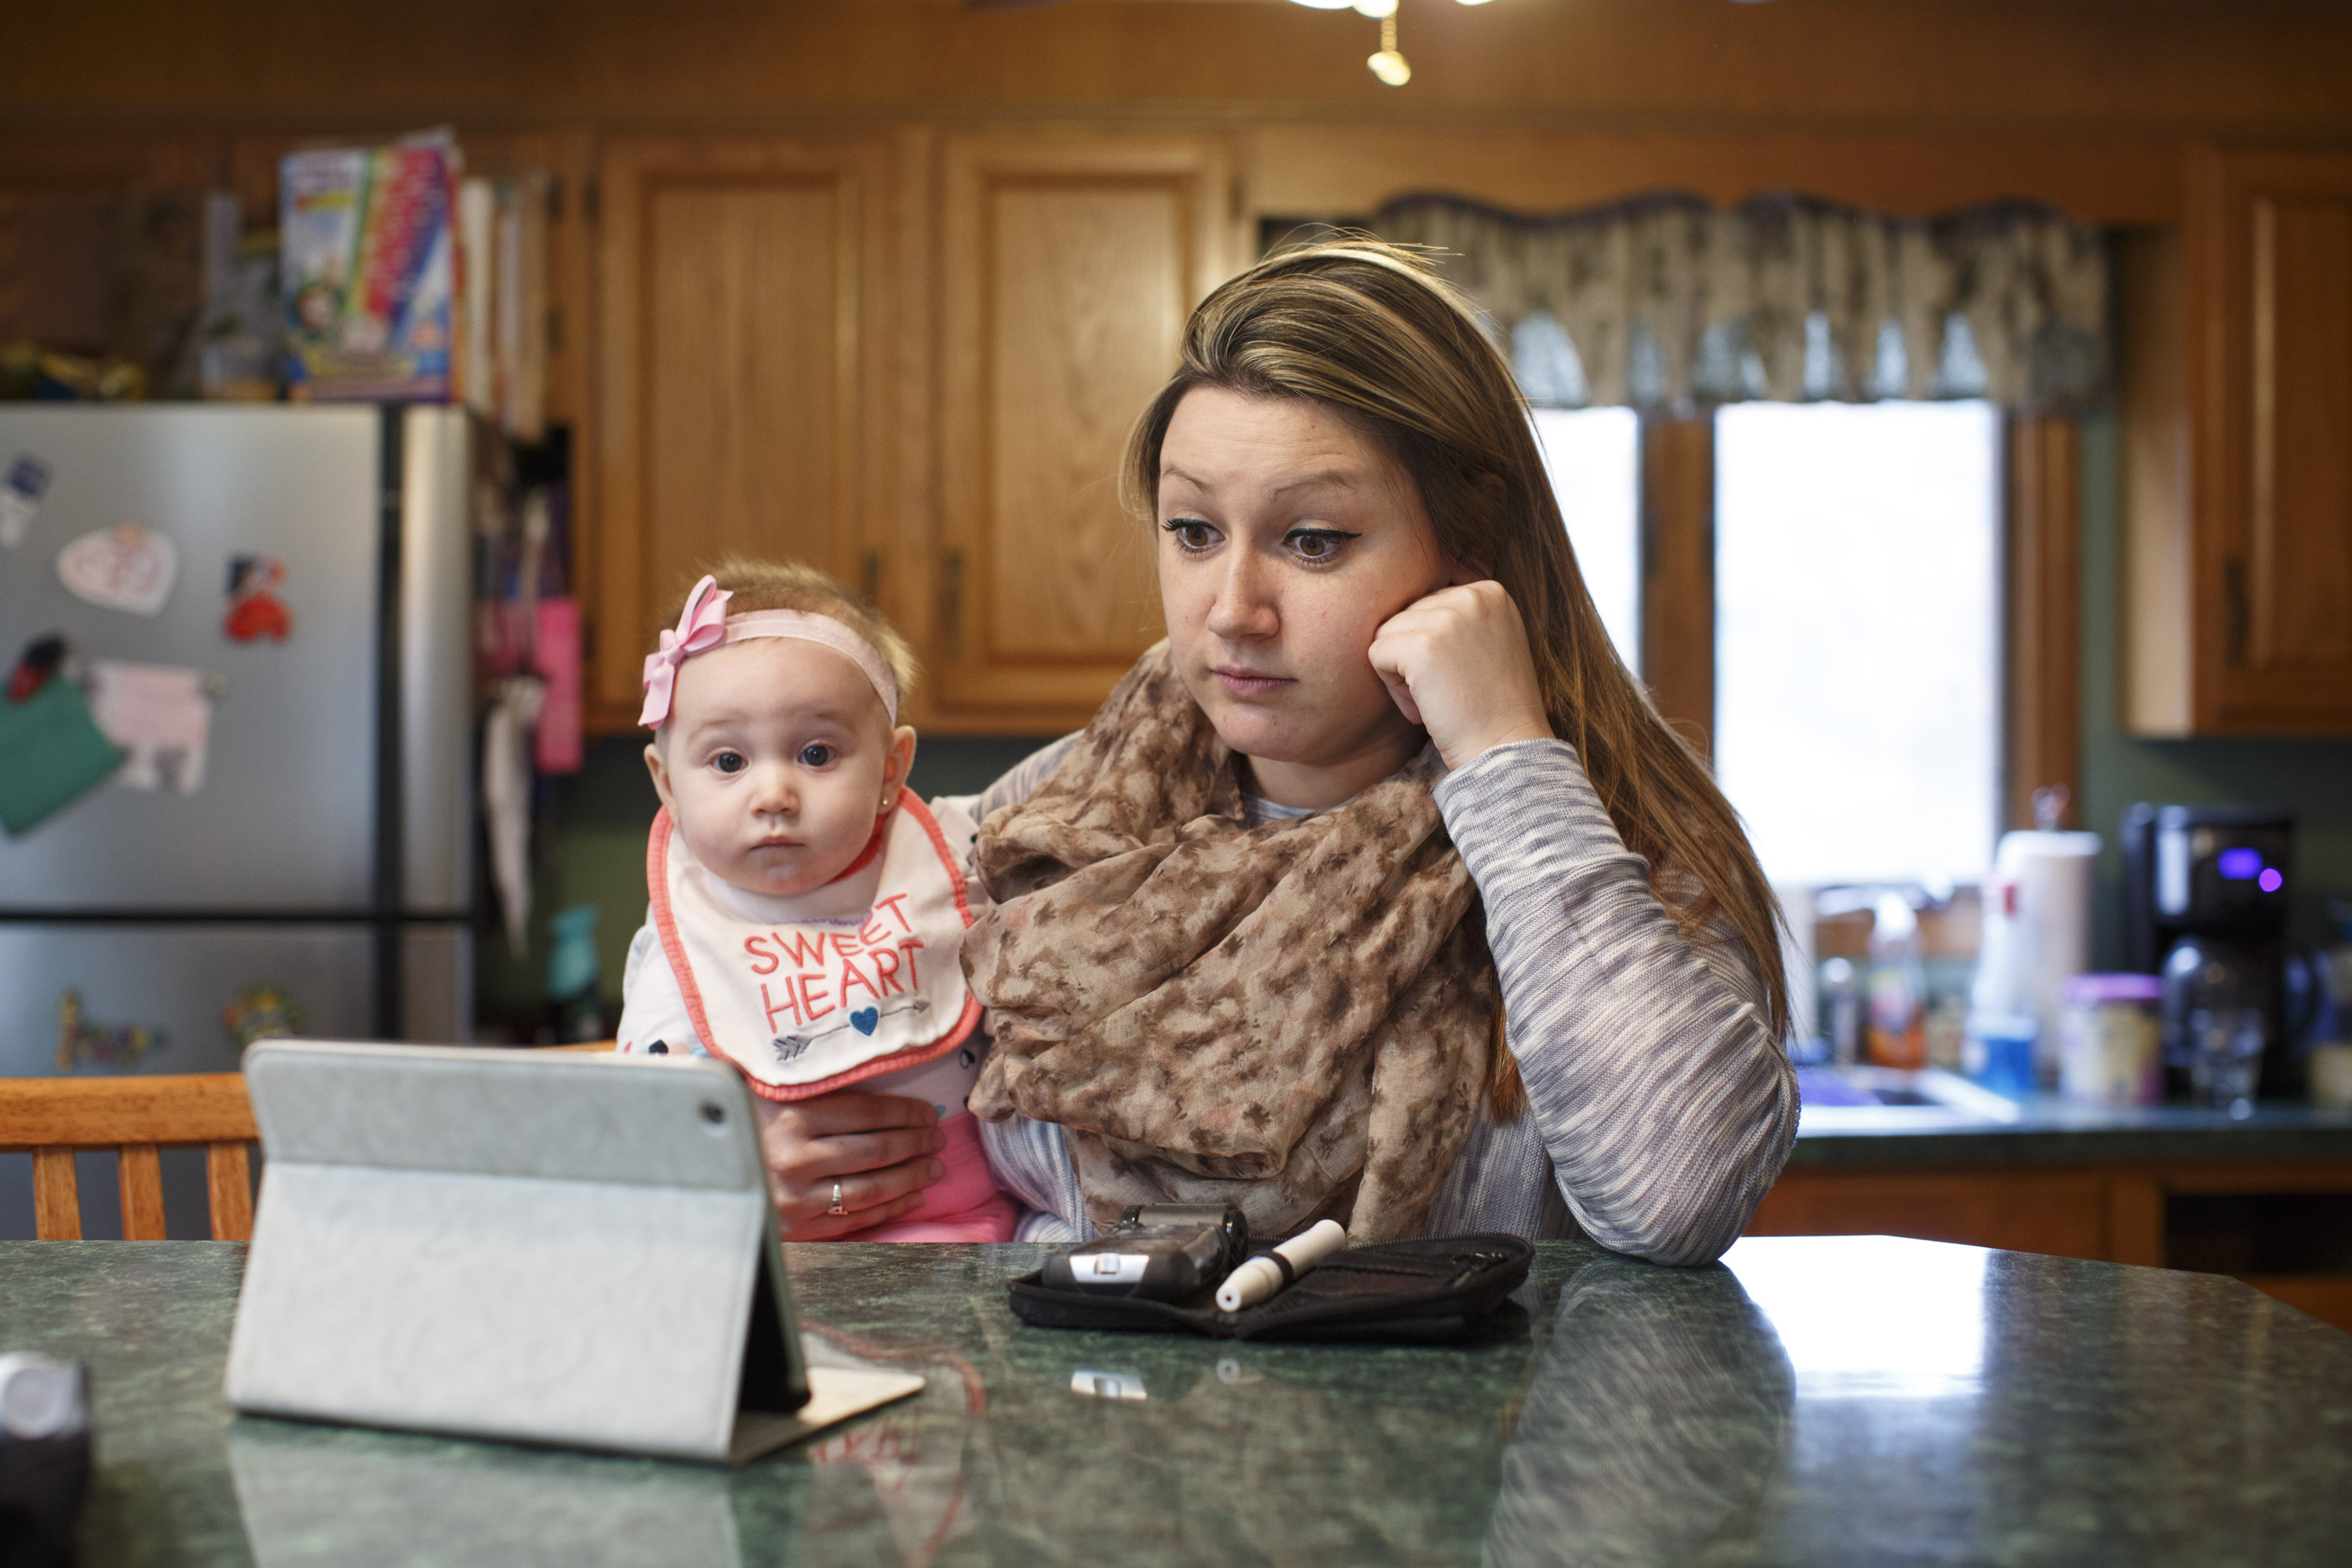 A mother and baby daughter sit in their house looking at a laptop screen.